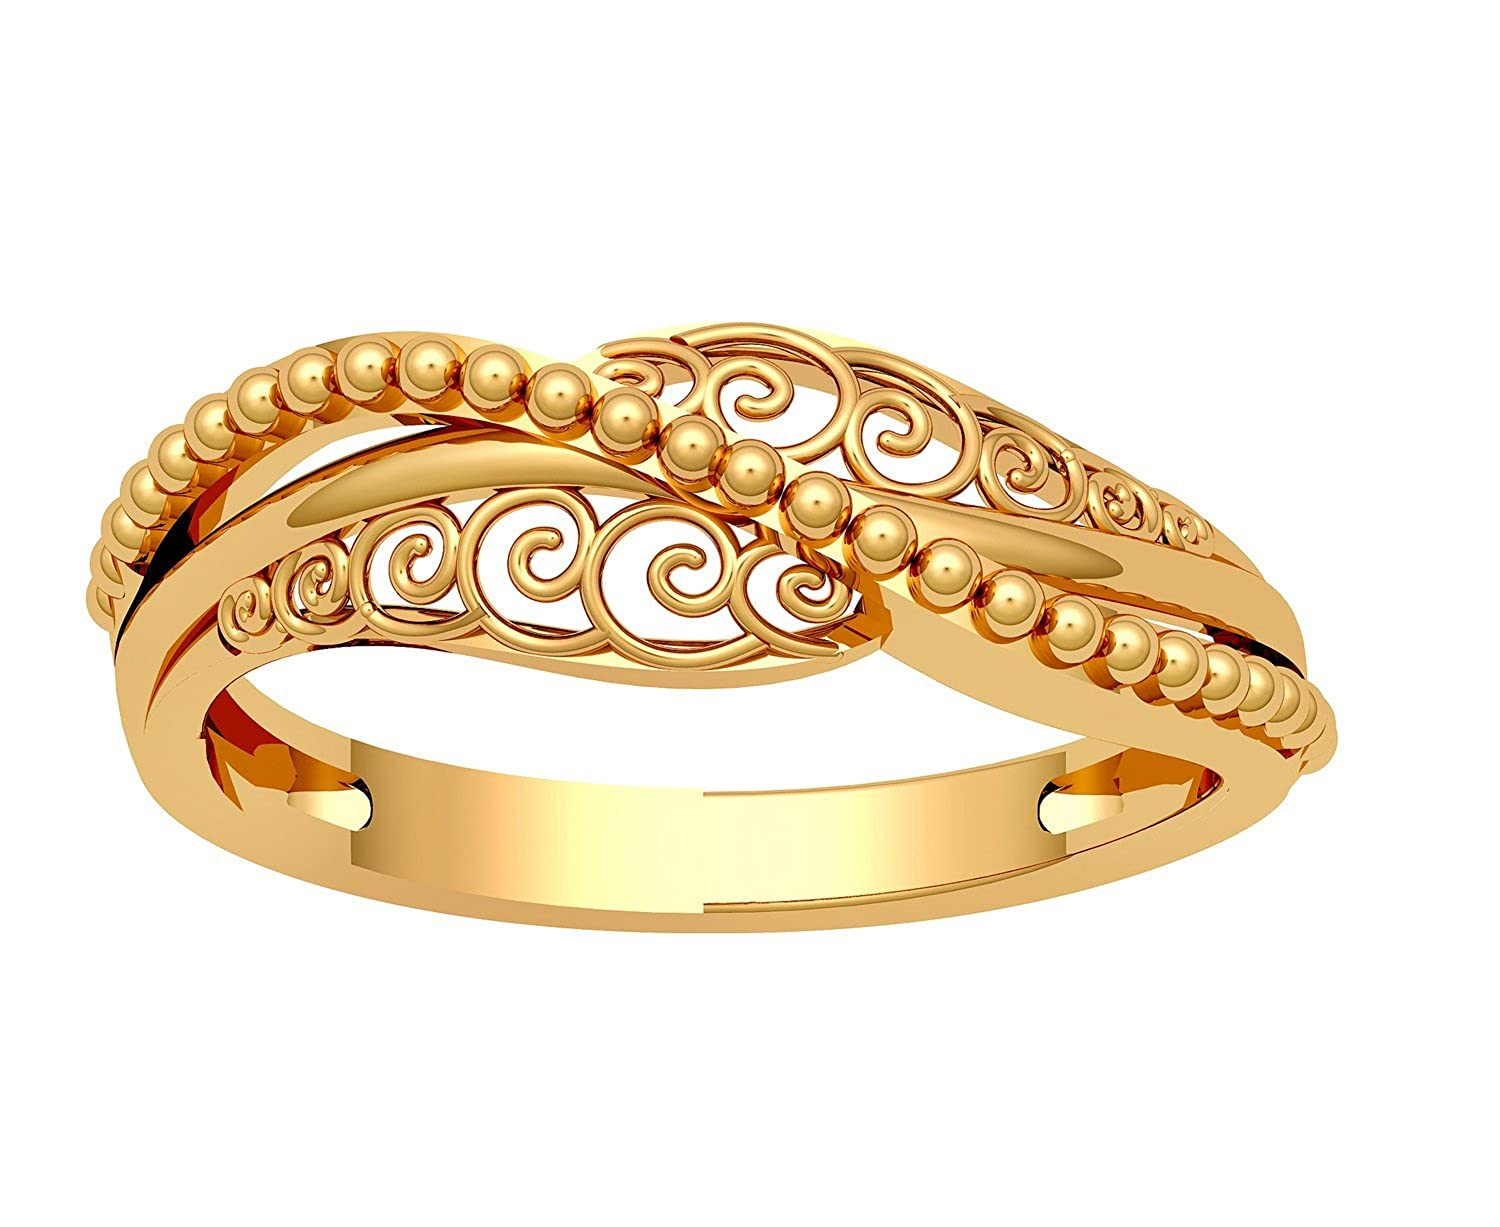 woman ring end models jewelry jewellery stl rings model high gold print lobortas